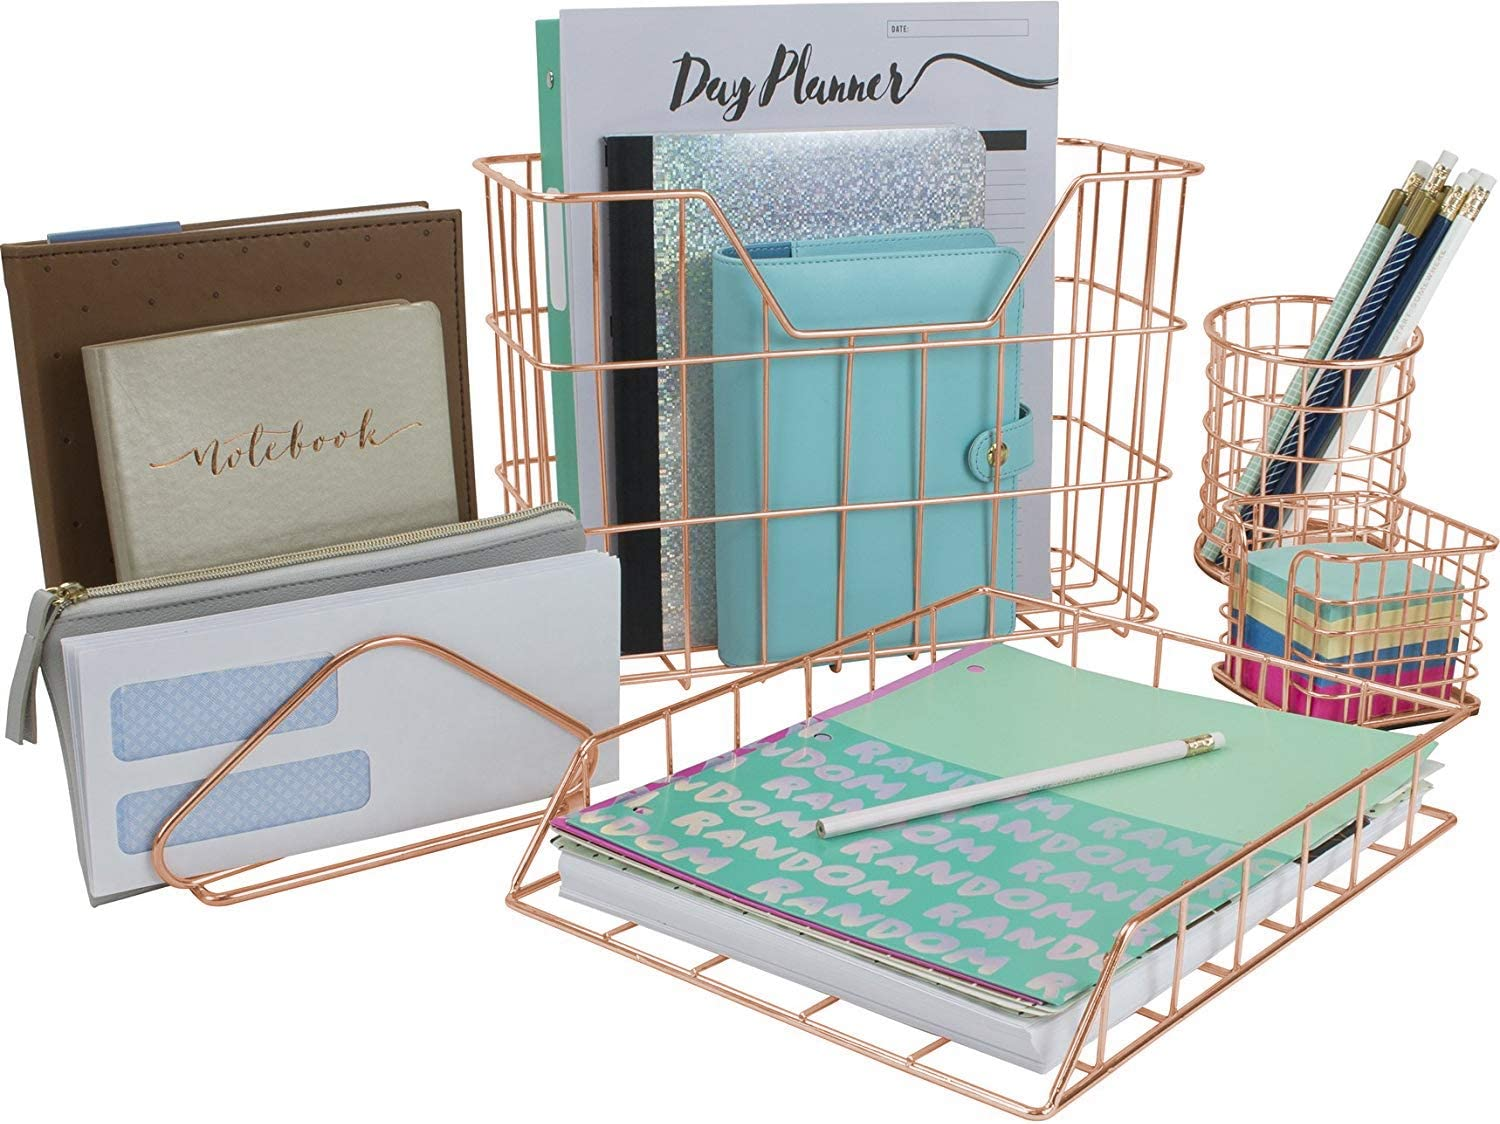 Sorbus Desk Organizer Set, Rose Gold 47-Piece Desk Accessories Set Includes  Pencil Cup Holder, Letter Sorter, Letter Tray, Hanging File Organizer, and